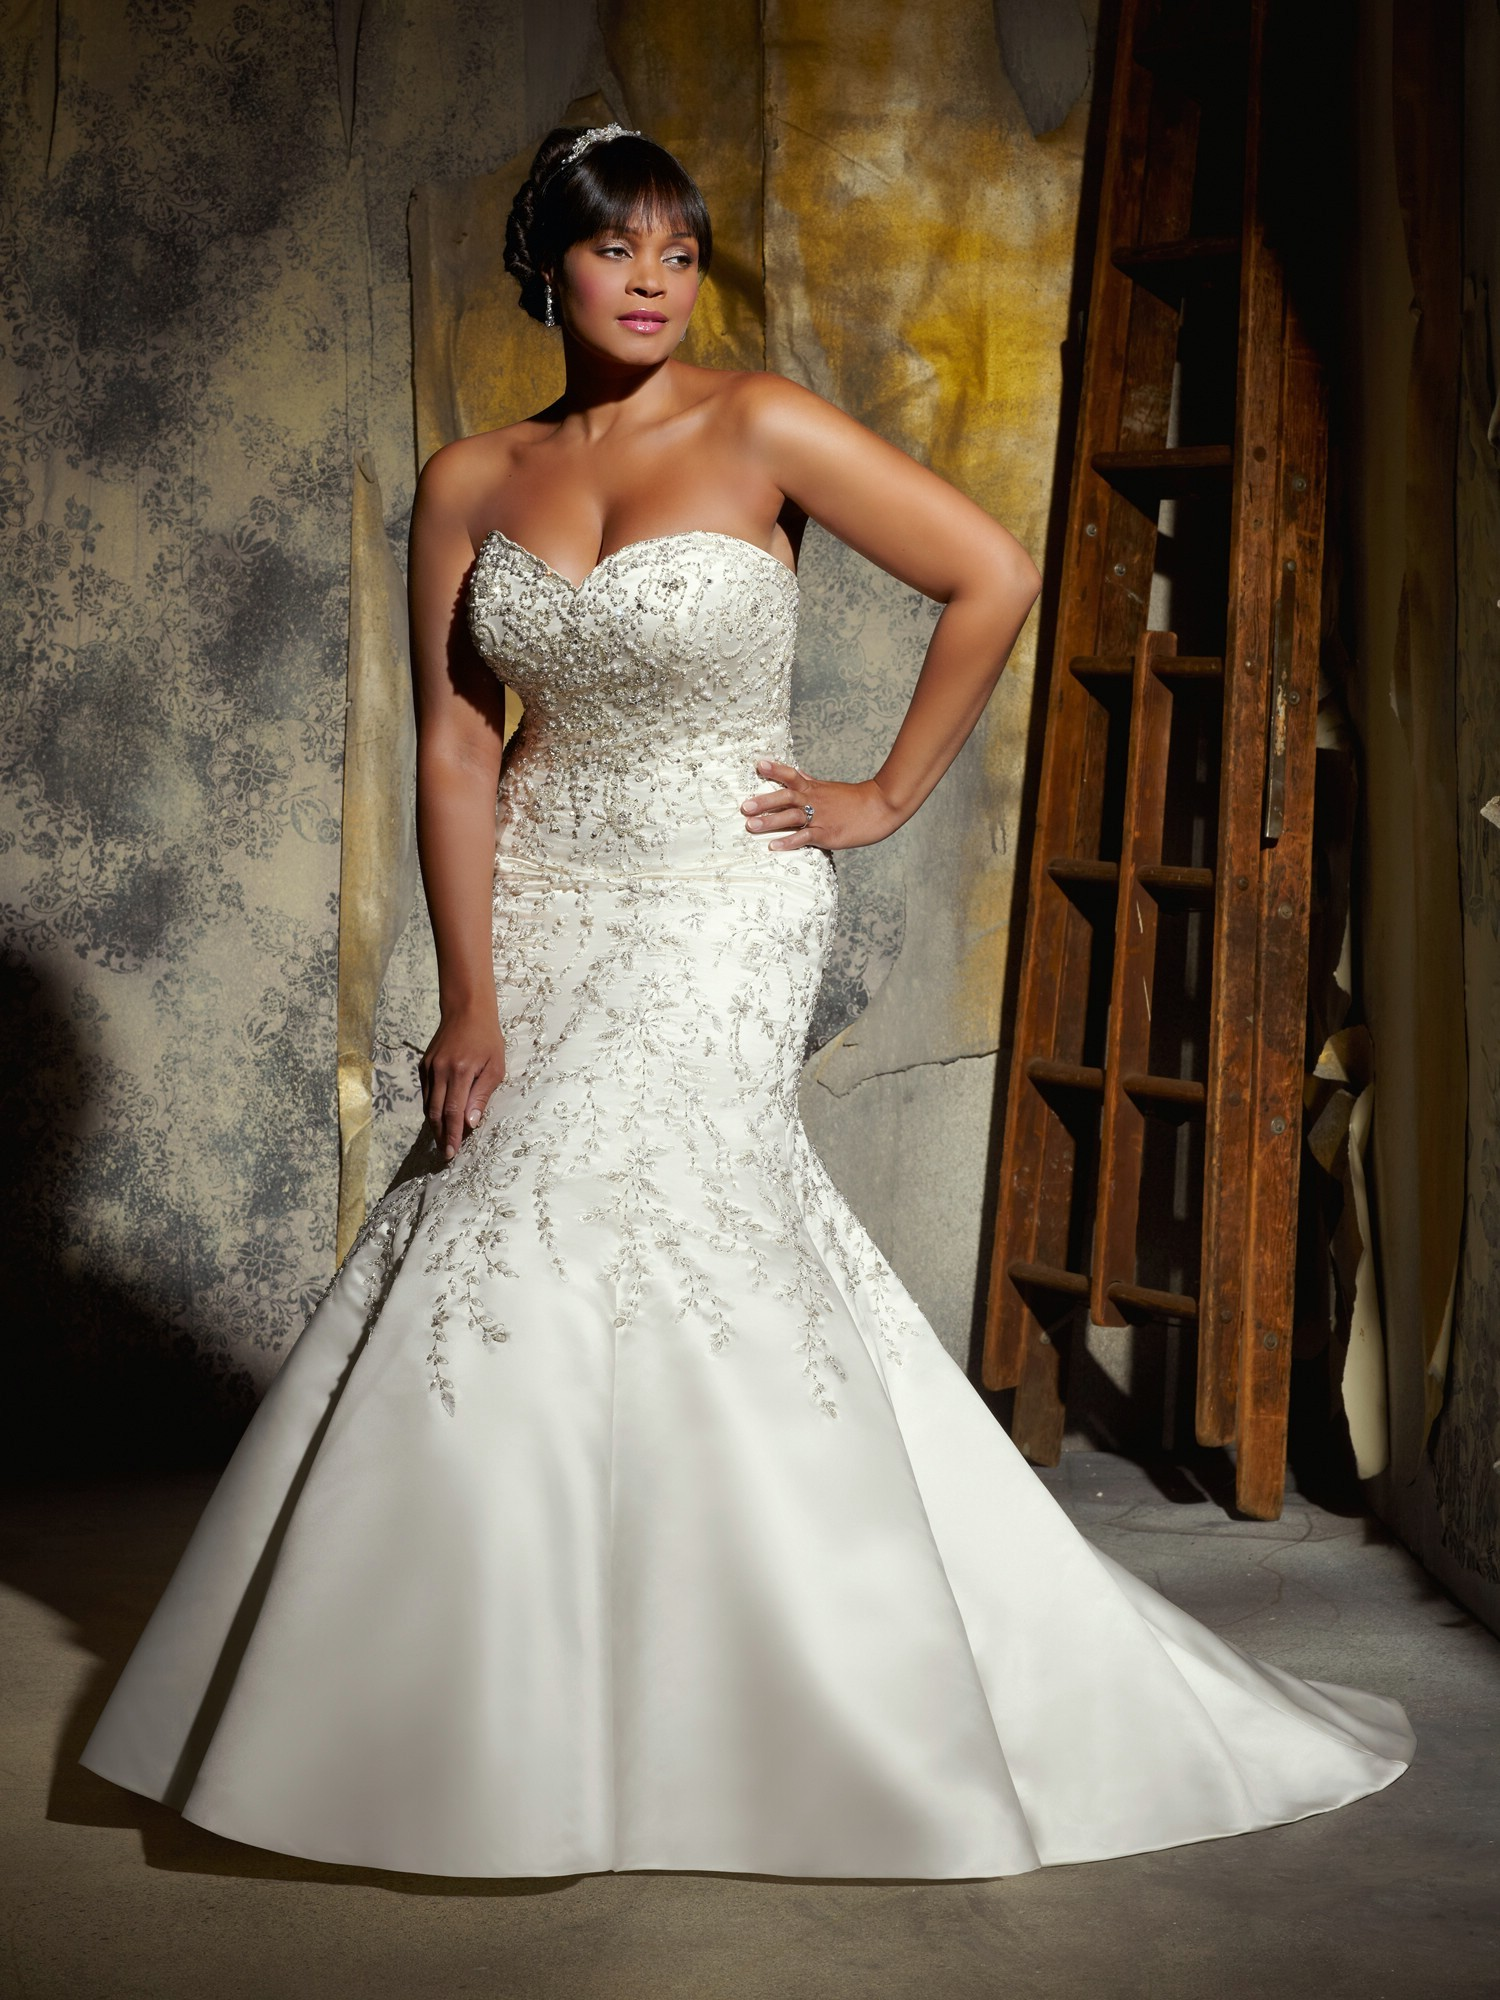 sangmaestro wedding dress wedding gown bridal